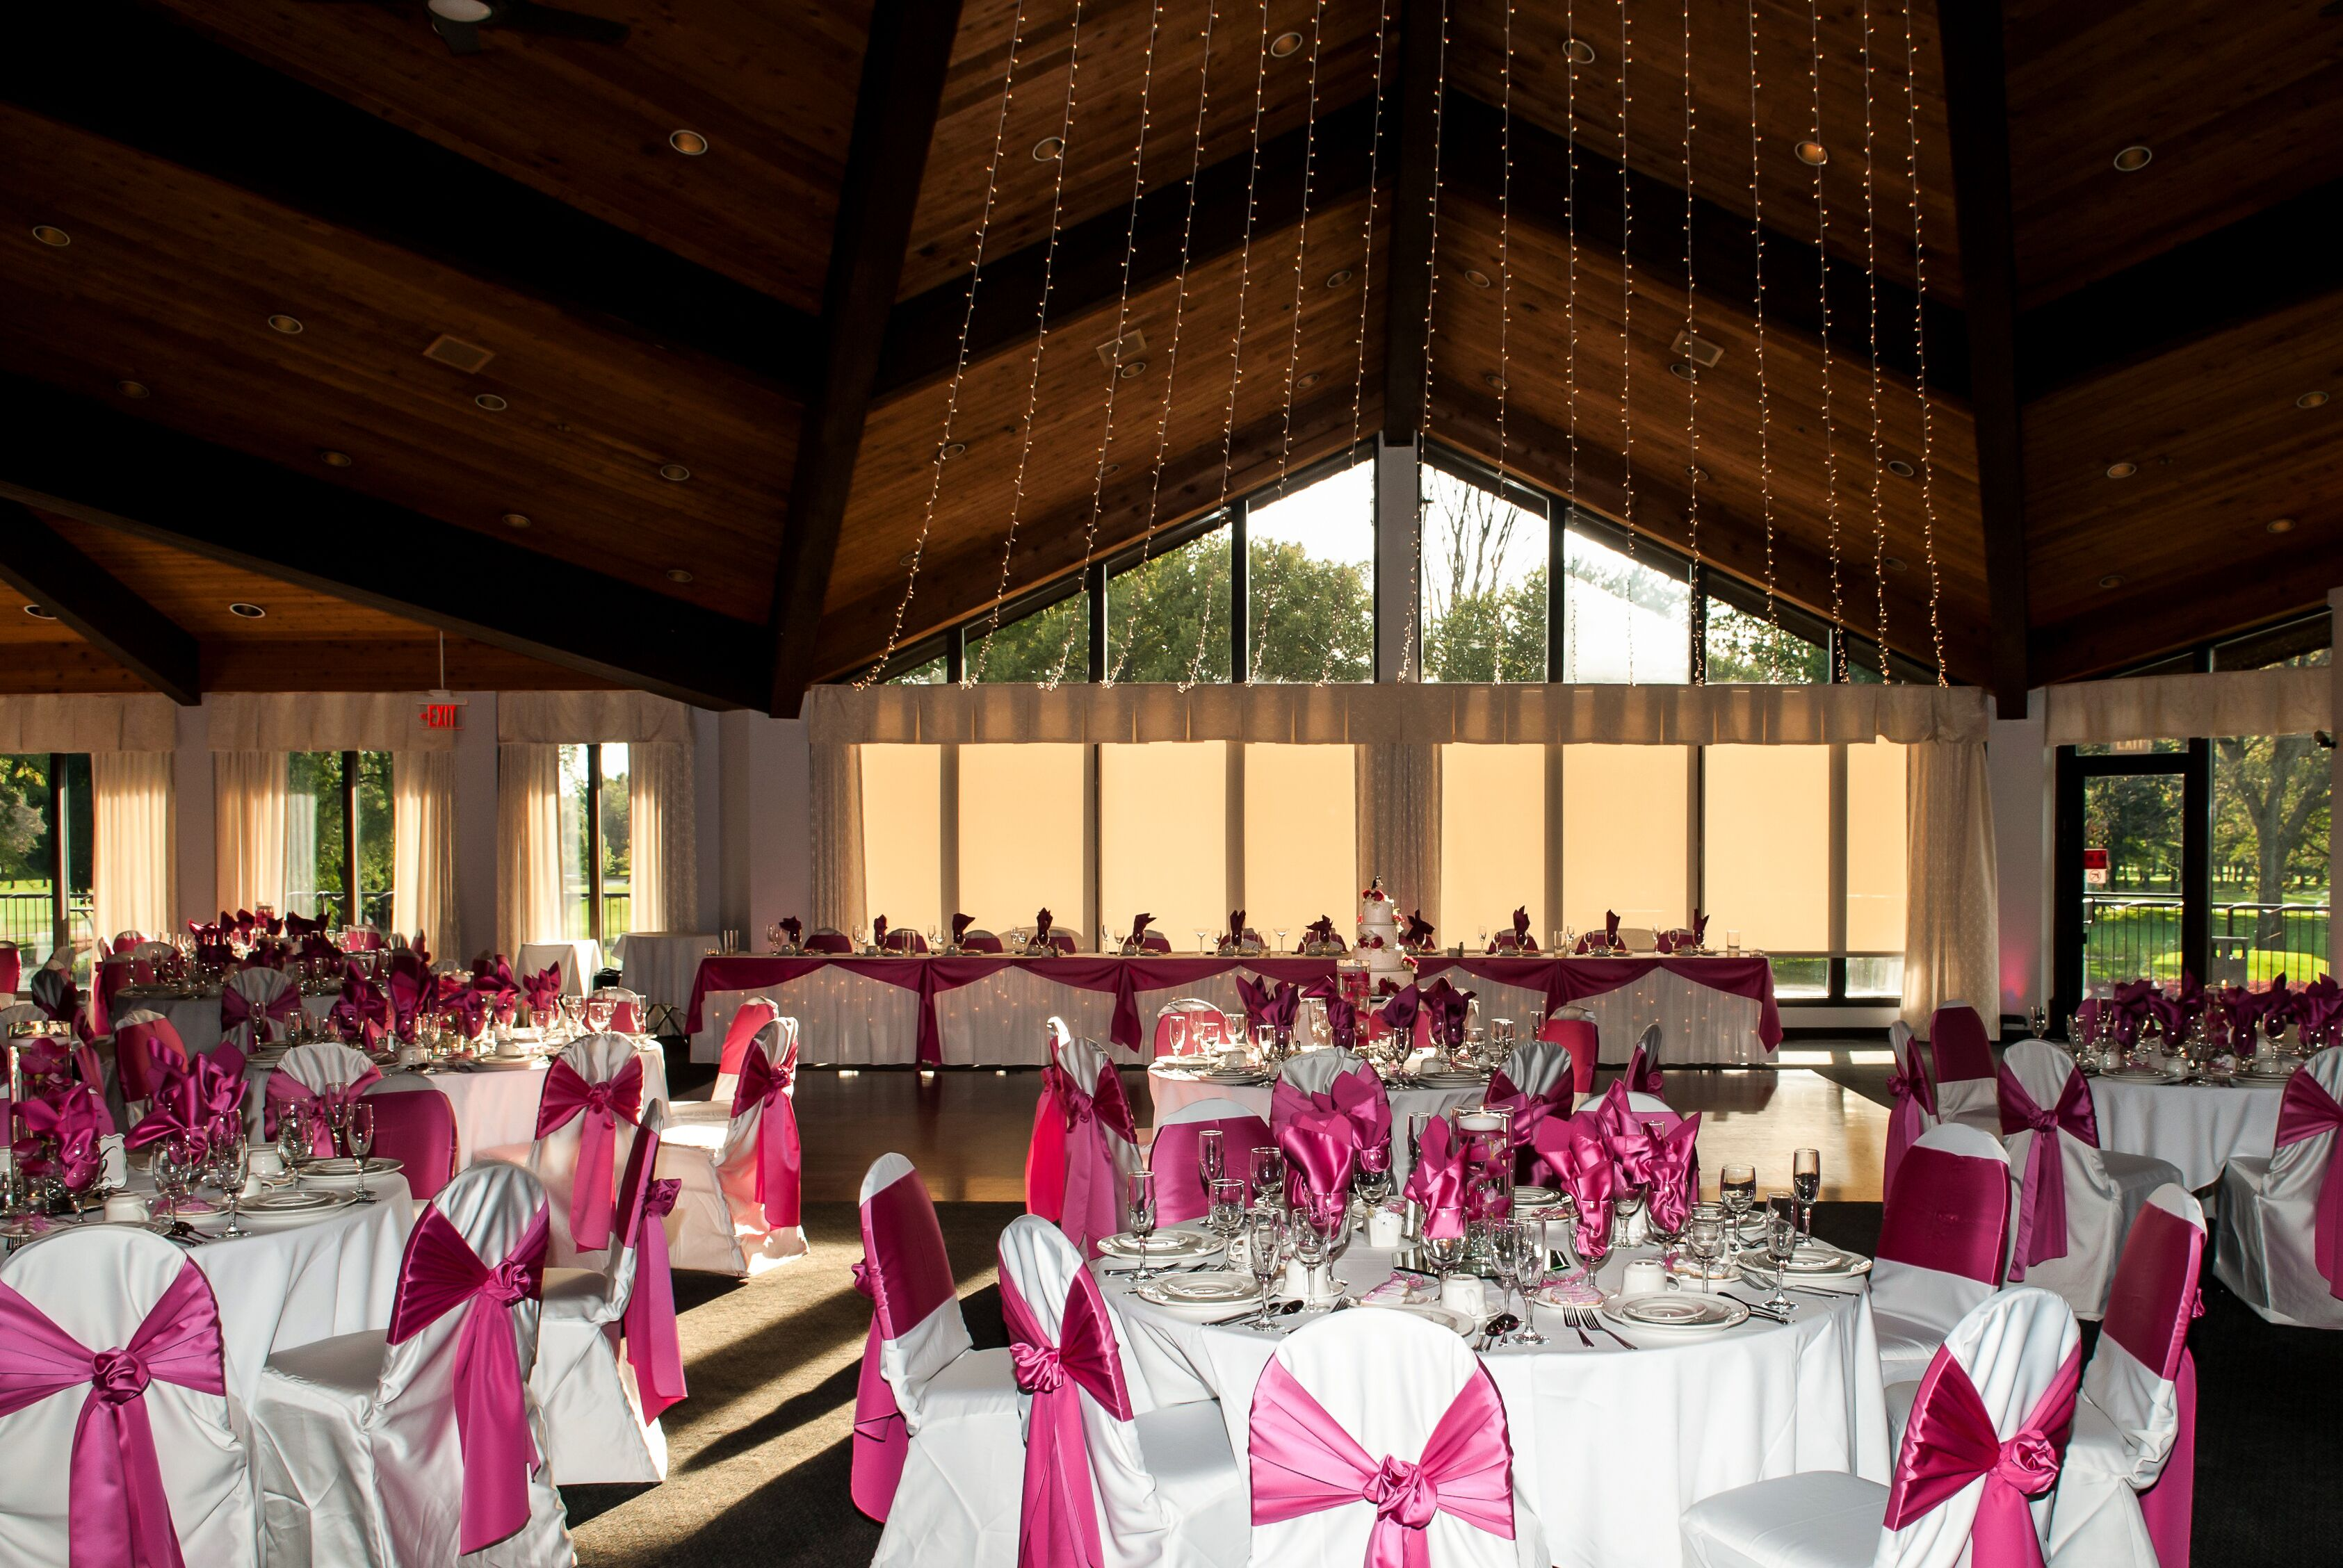 Wedding Reception Venues Southwest Chicago Suburbs Wedding Ideas